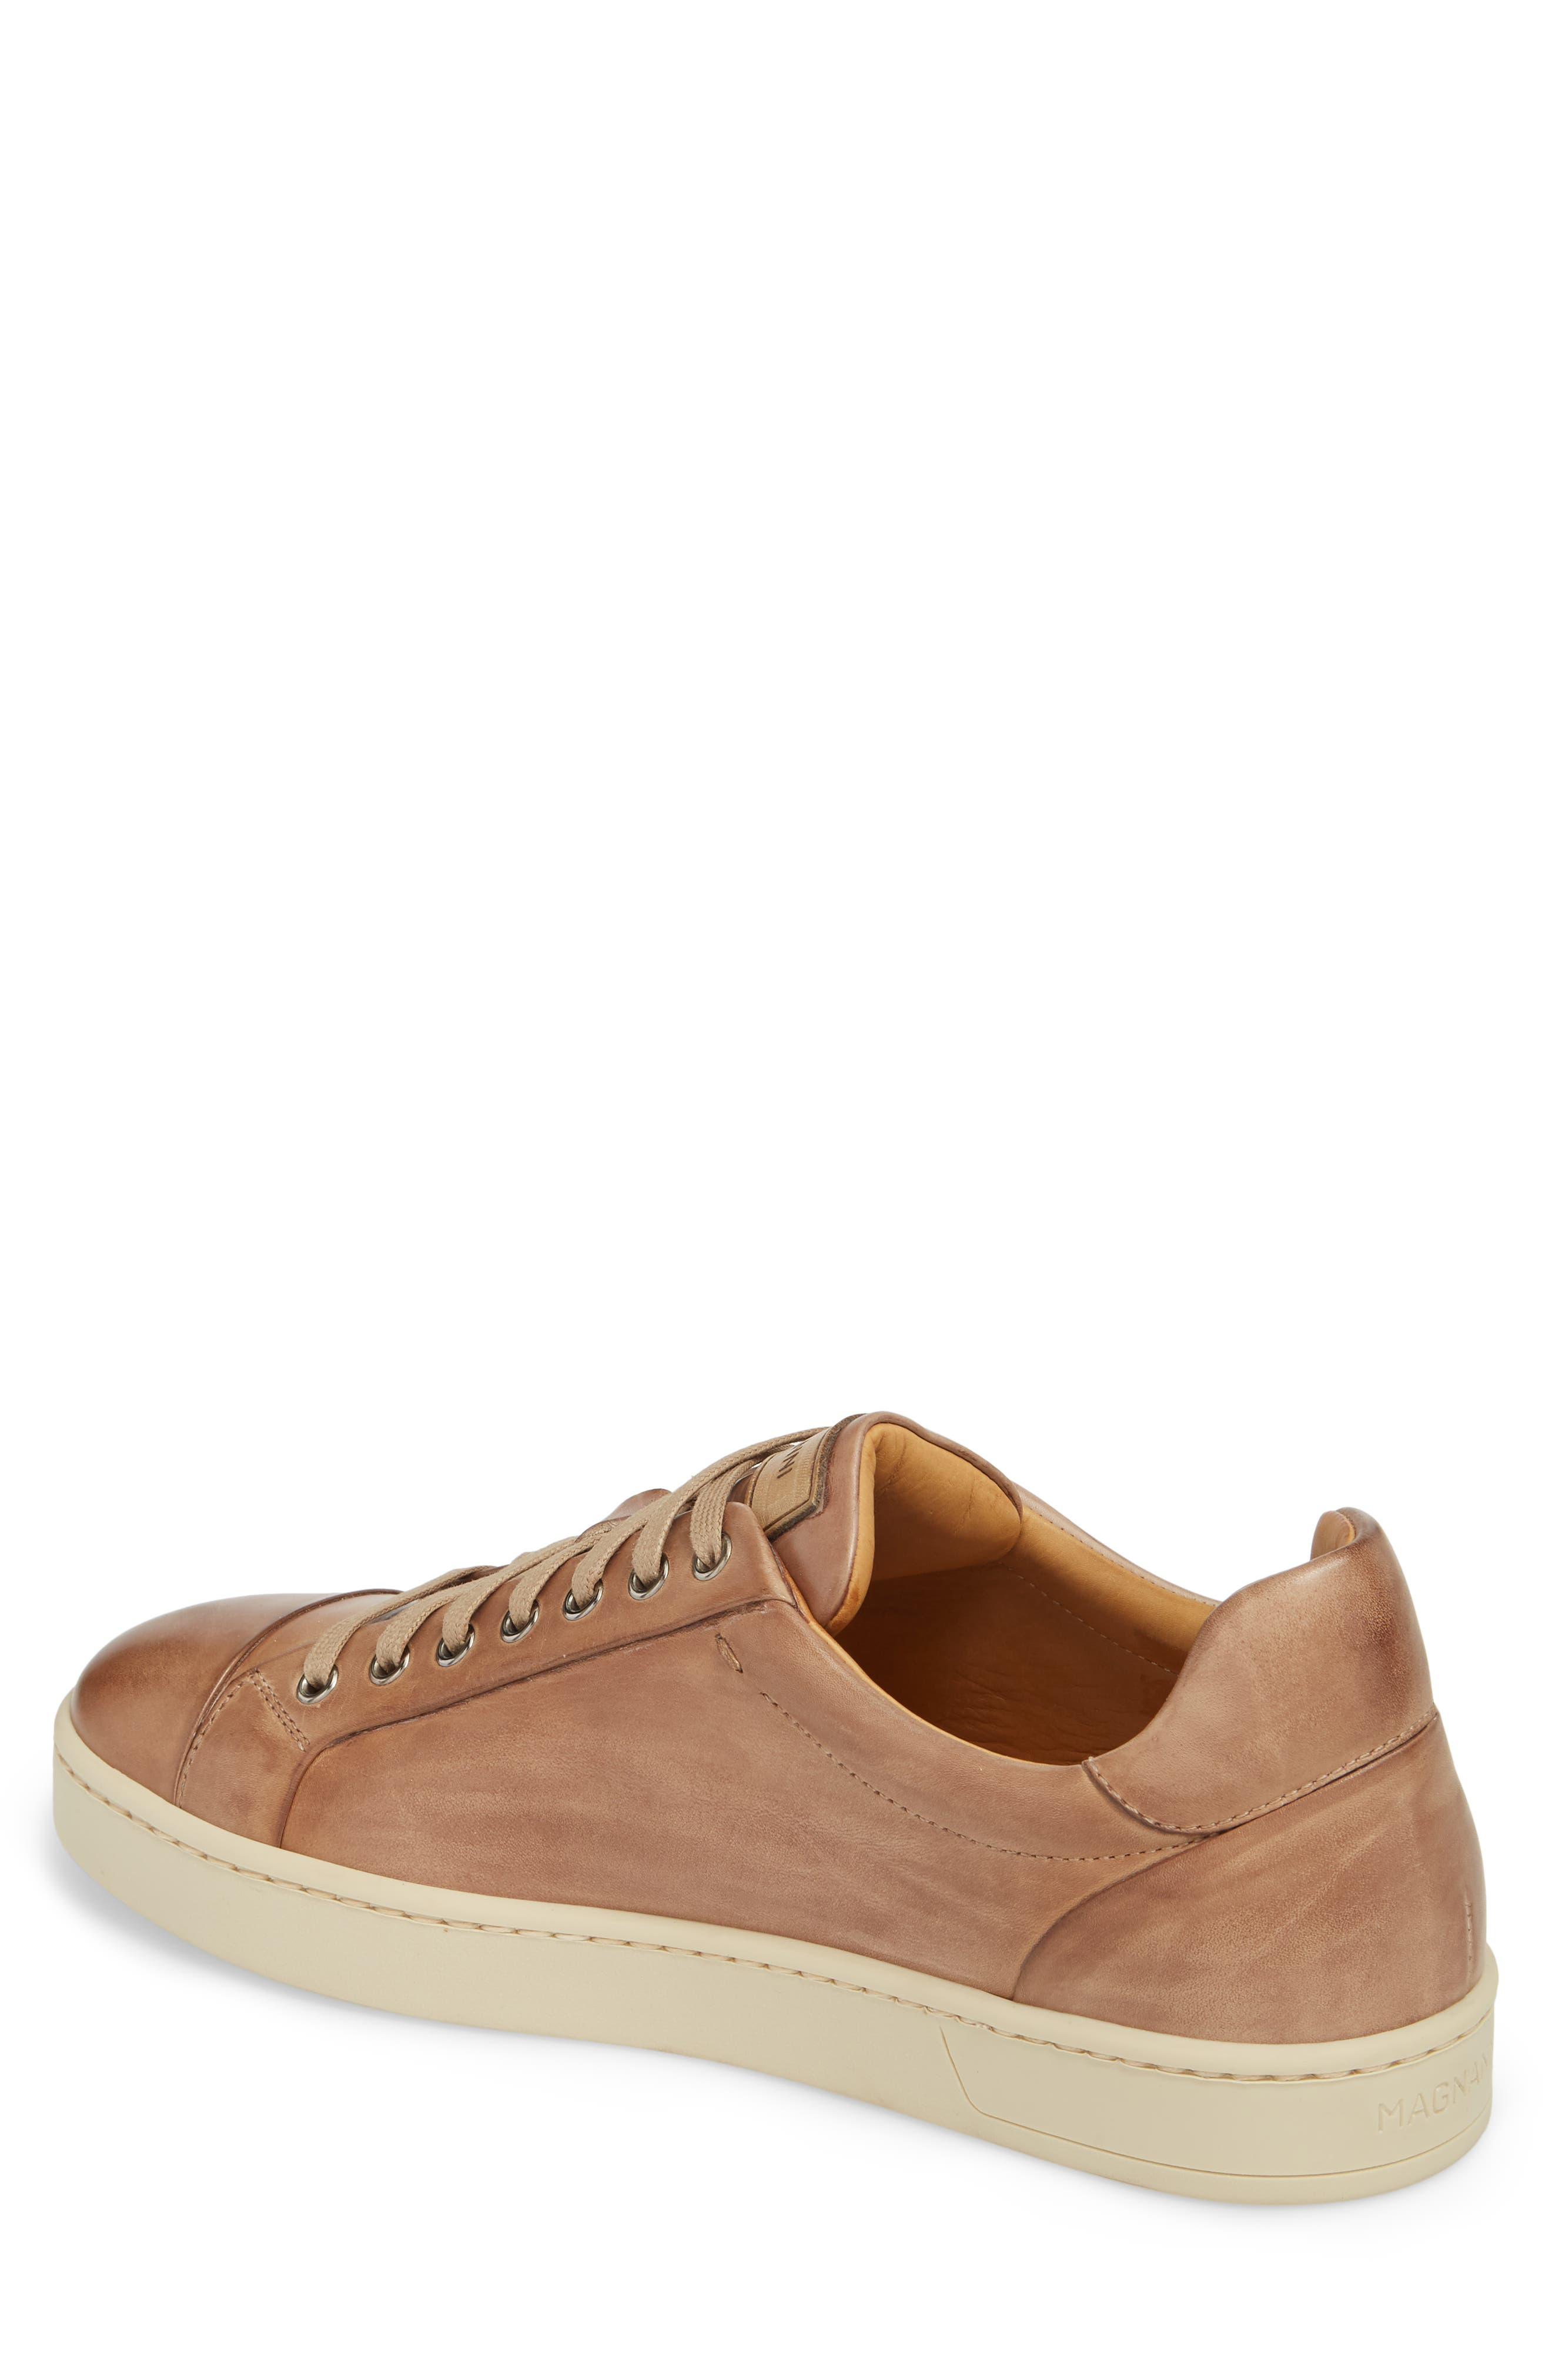 Erardo Low Top Sneaker,                             Alternate thumbnail 2, color,                             Taupe/ Taupe Leather